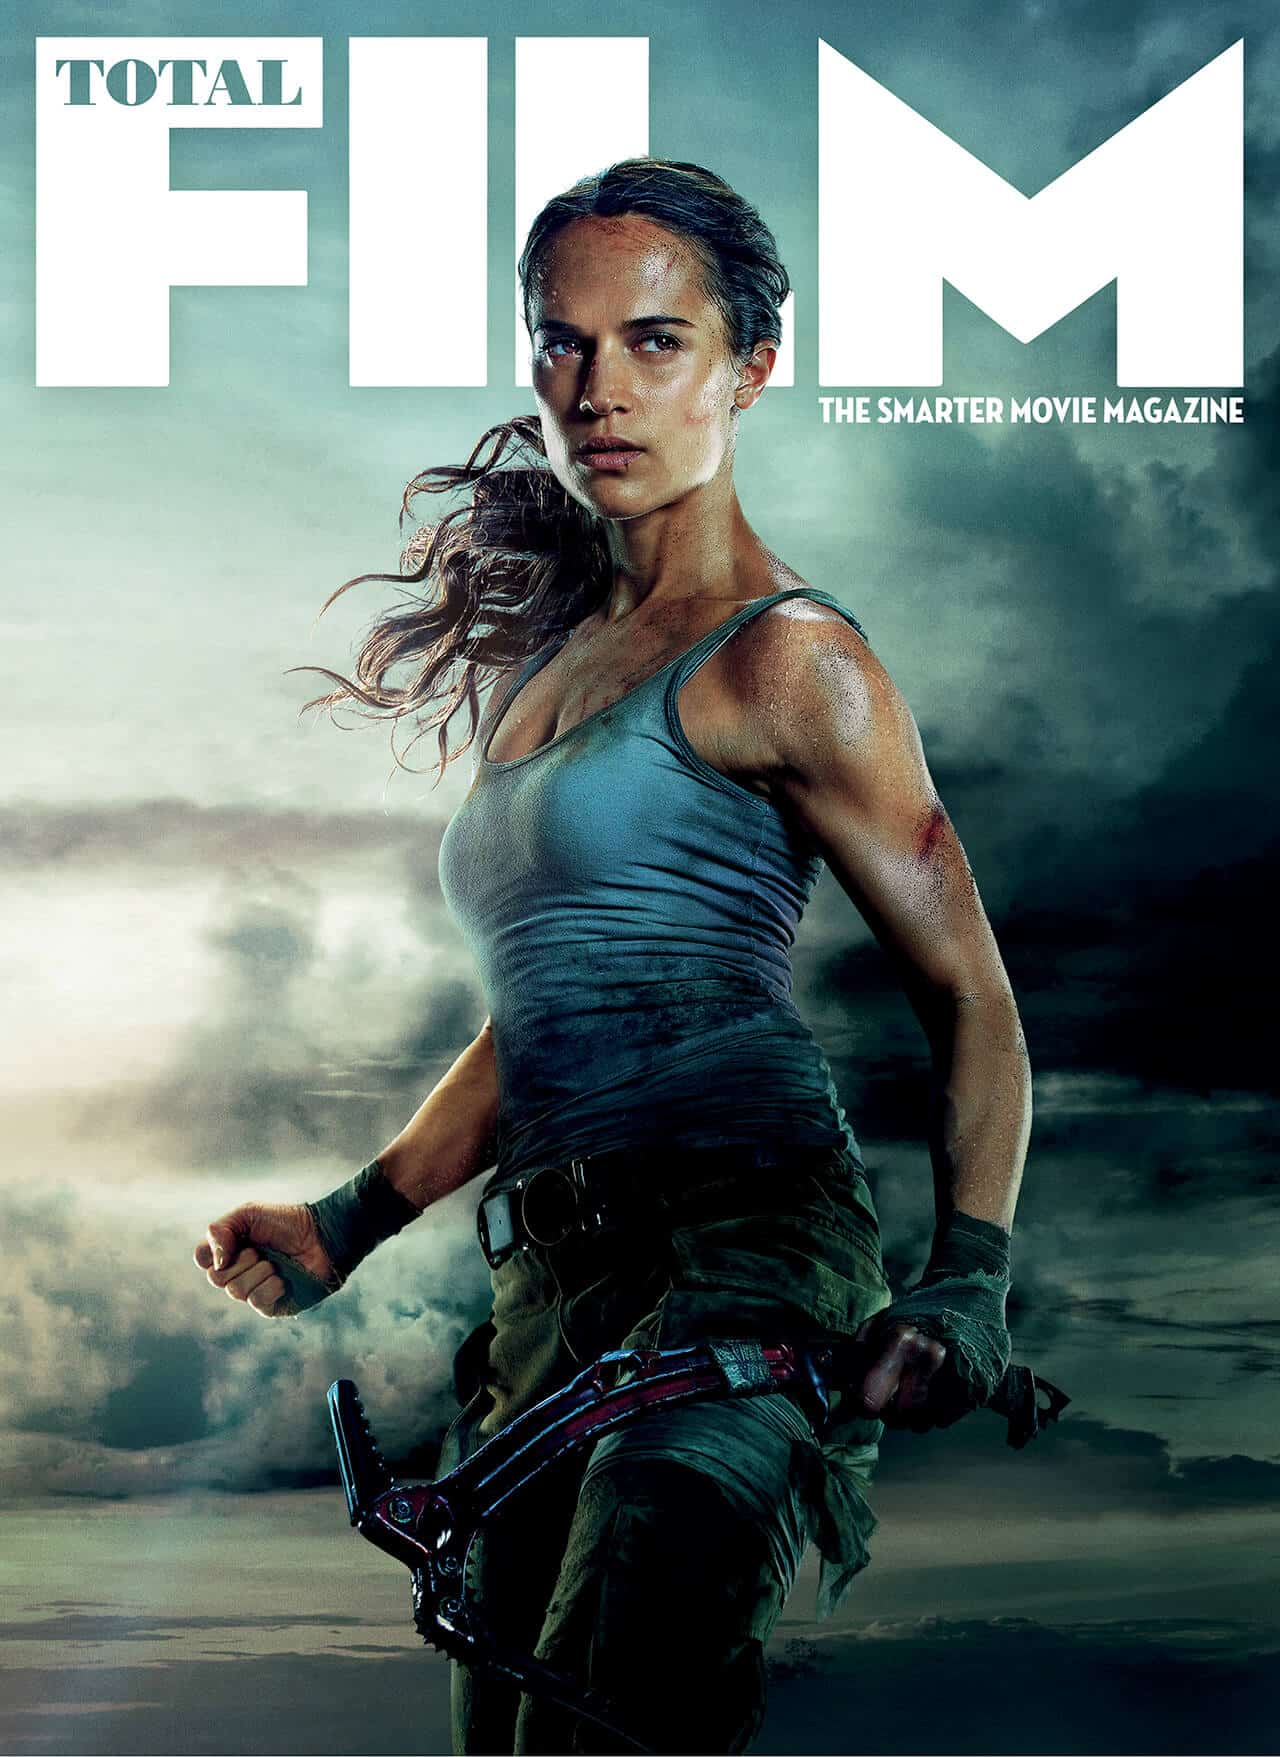 tomb raider, alicia vikander, lara croft, cinematographe